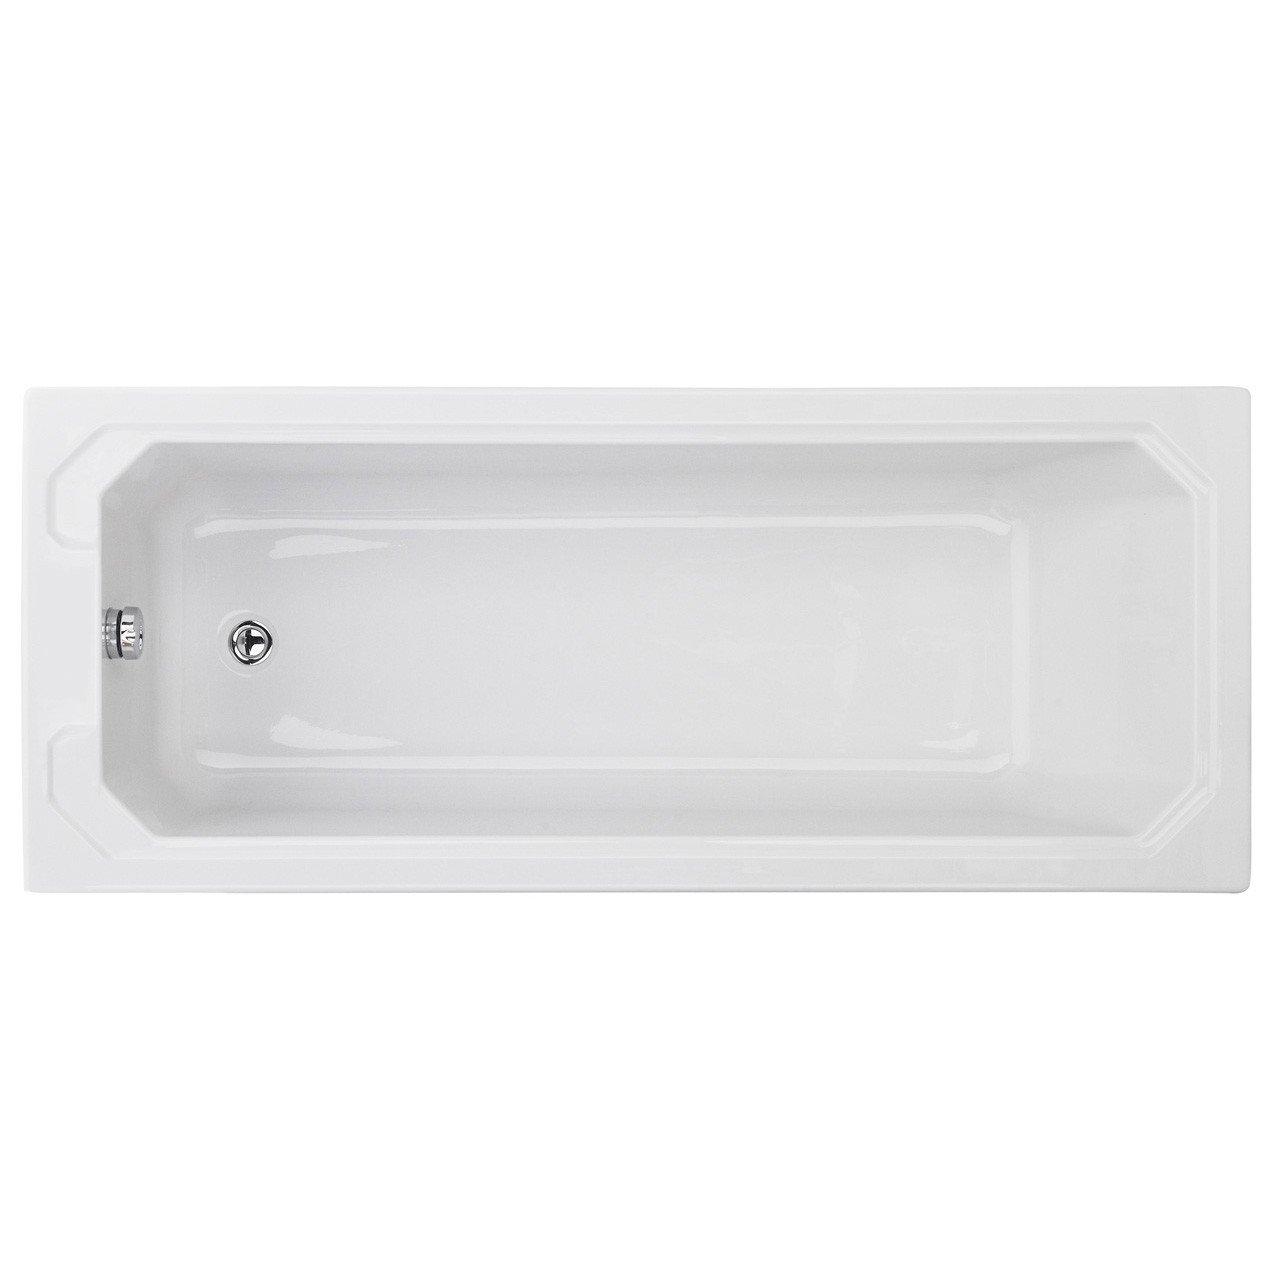 Premier Art Deco Bath 1700mm x 750mm - LDB110